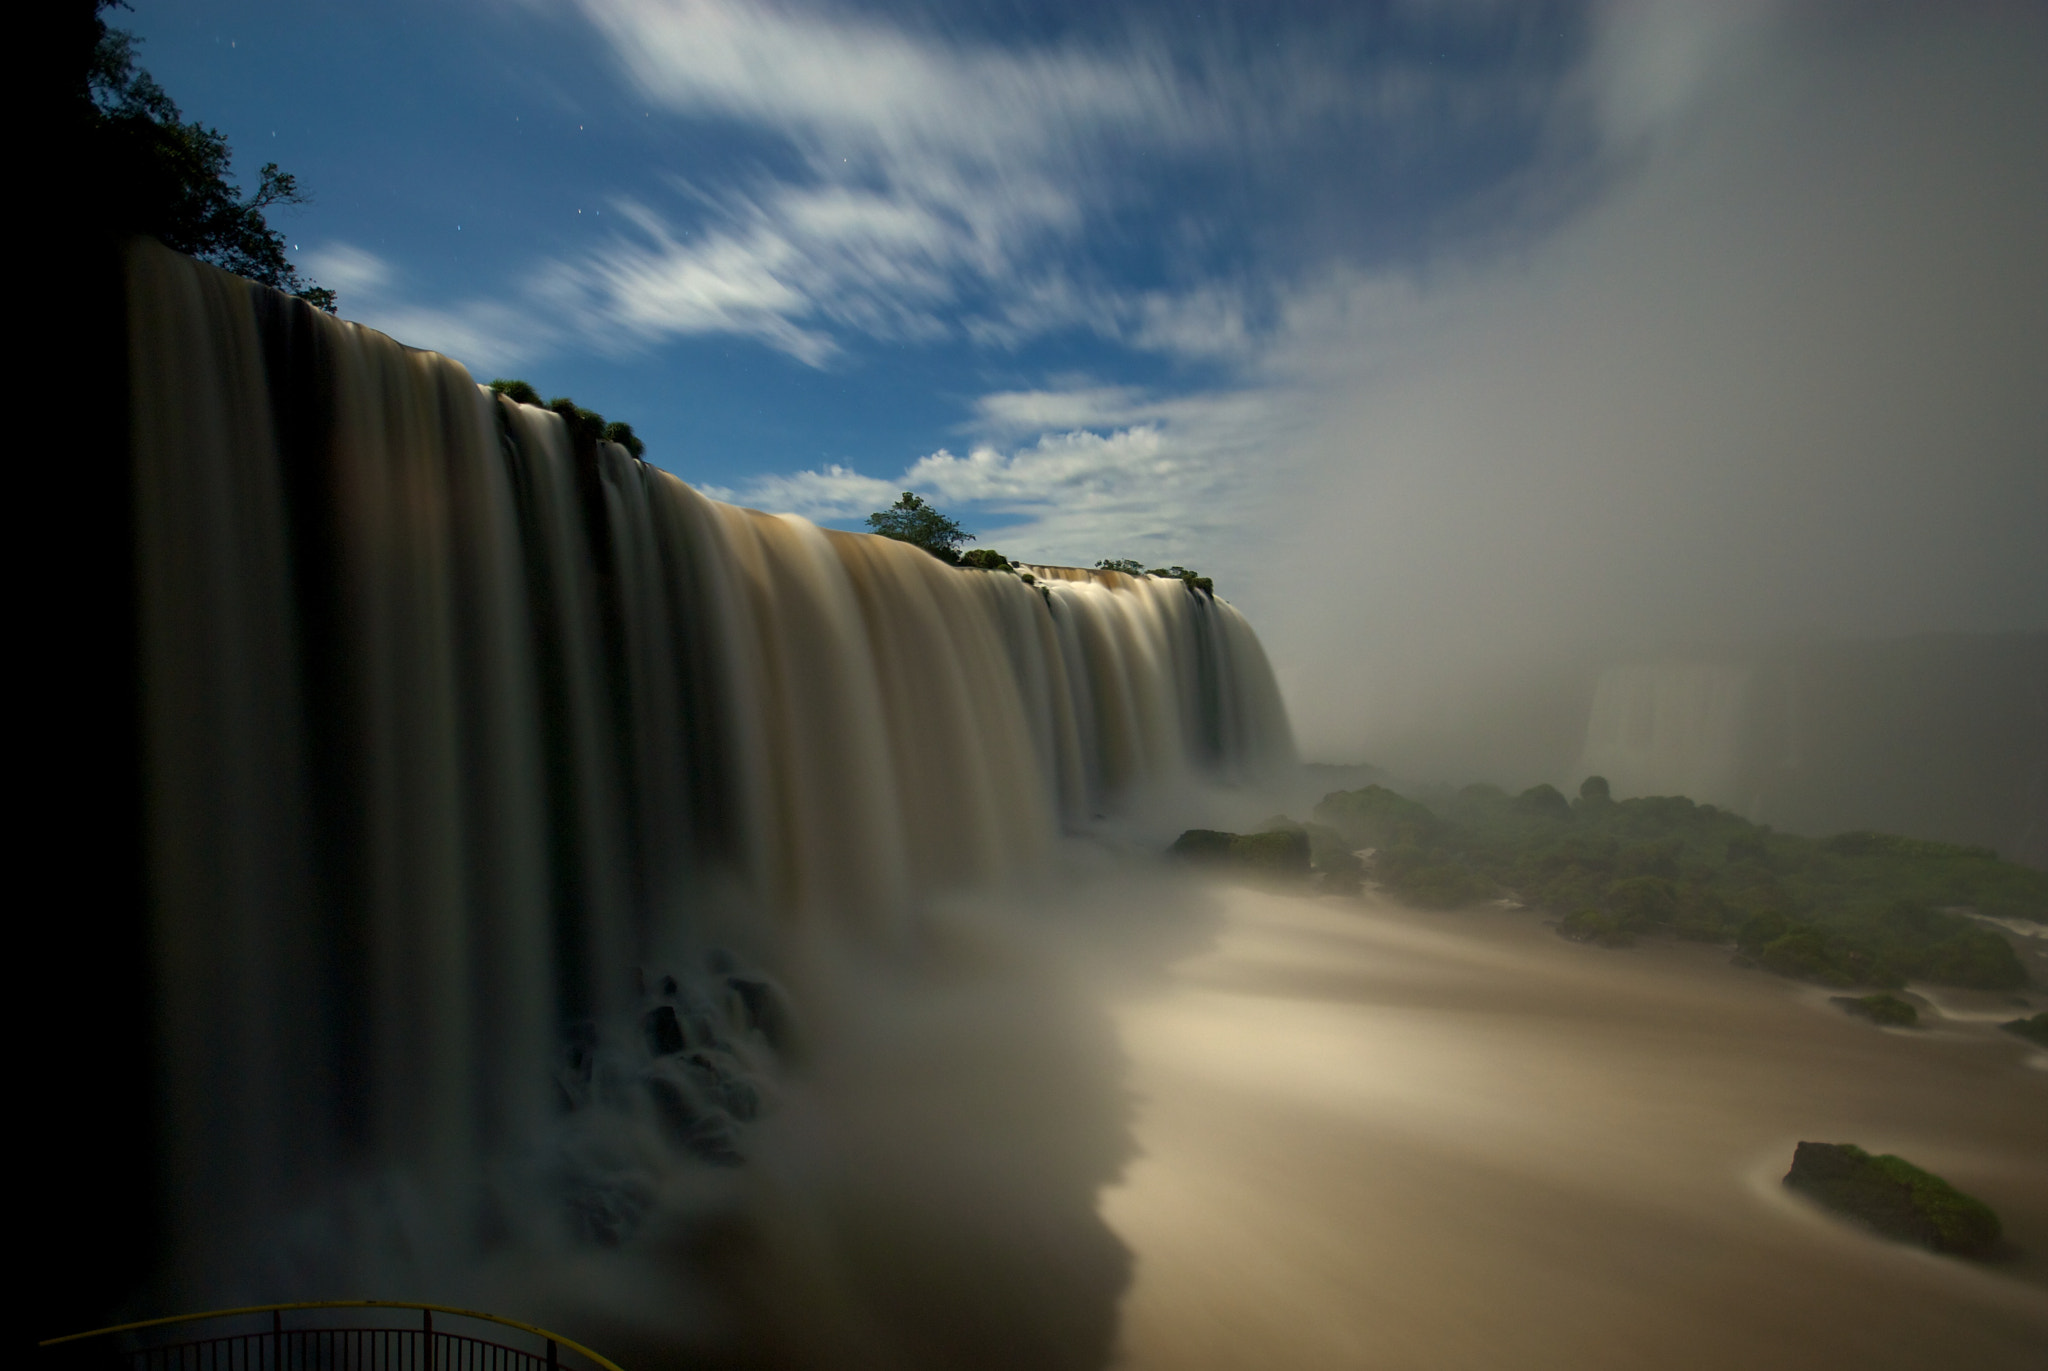 Photograph Iguazú waterfalls during full moon by Remco Douma on 500px